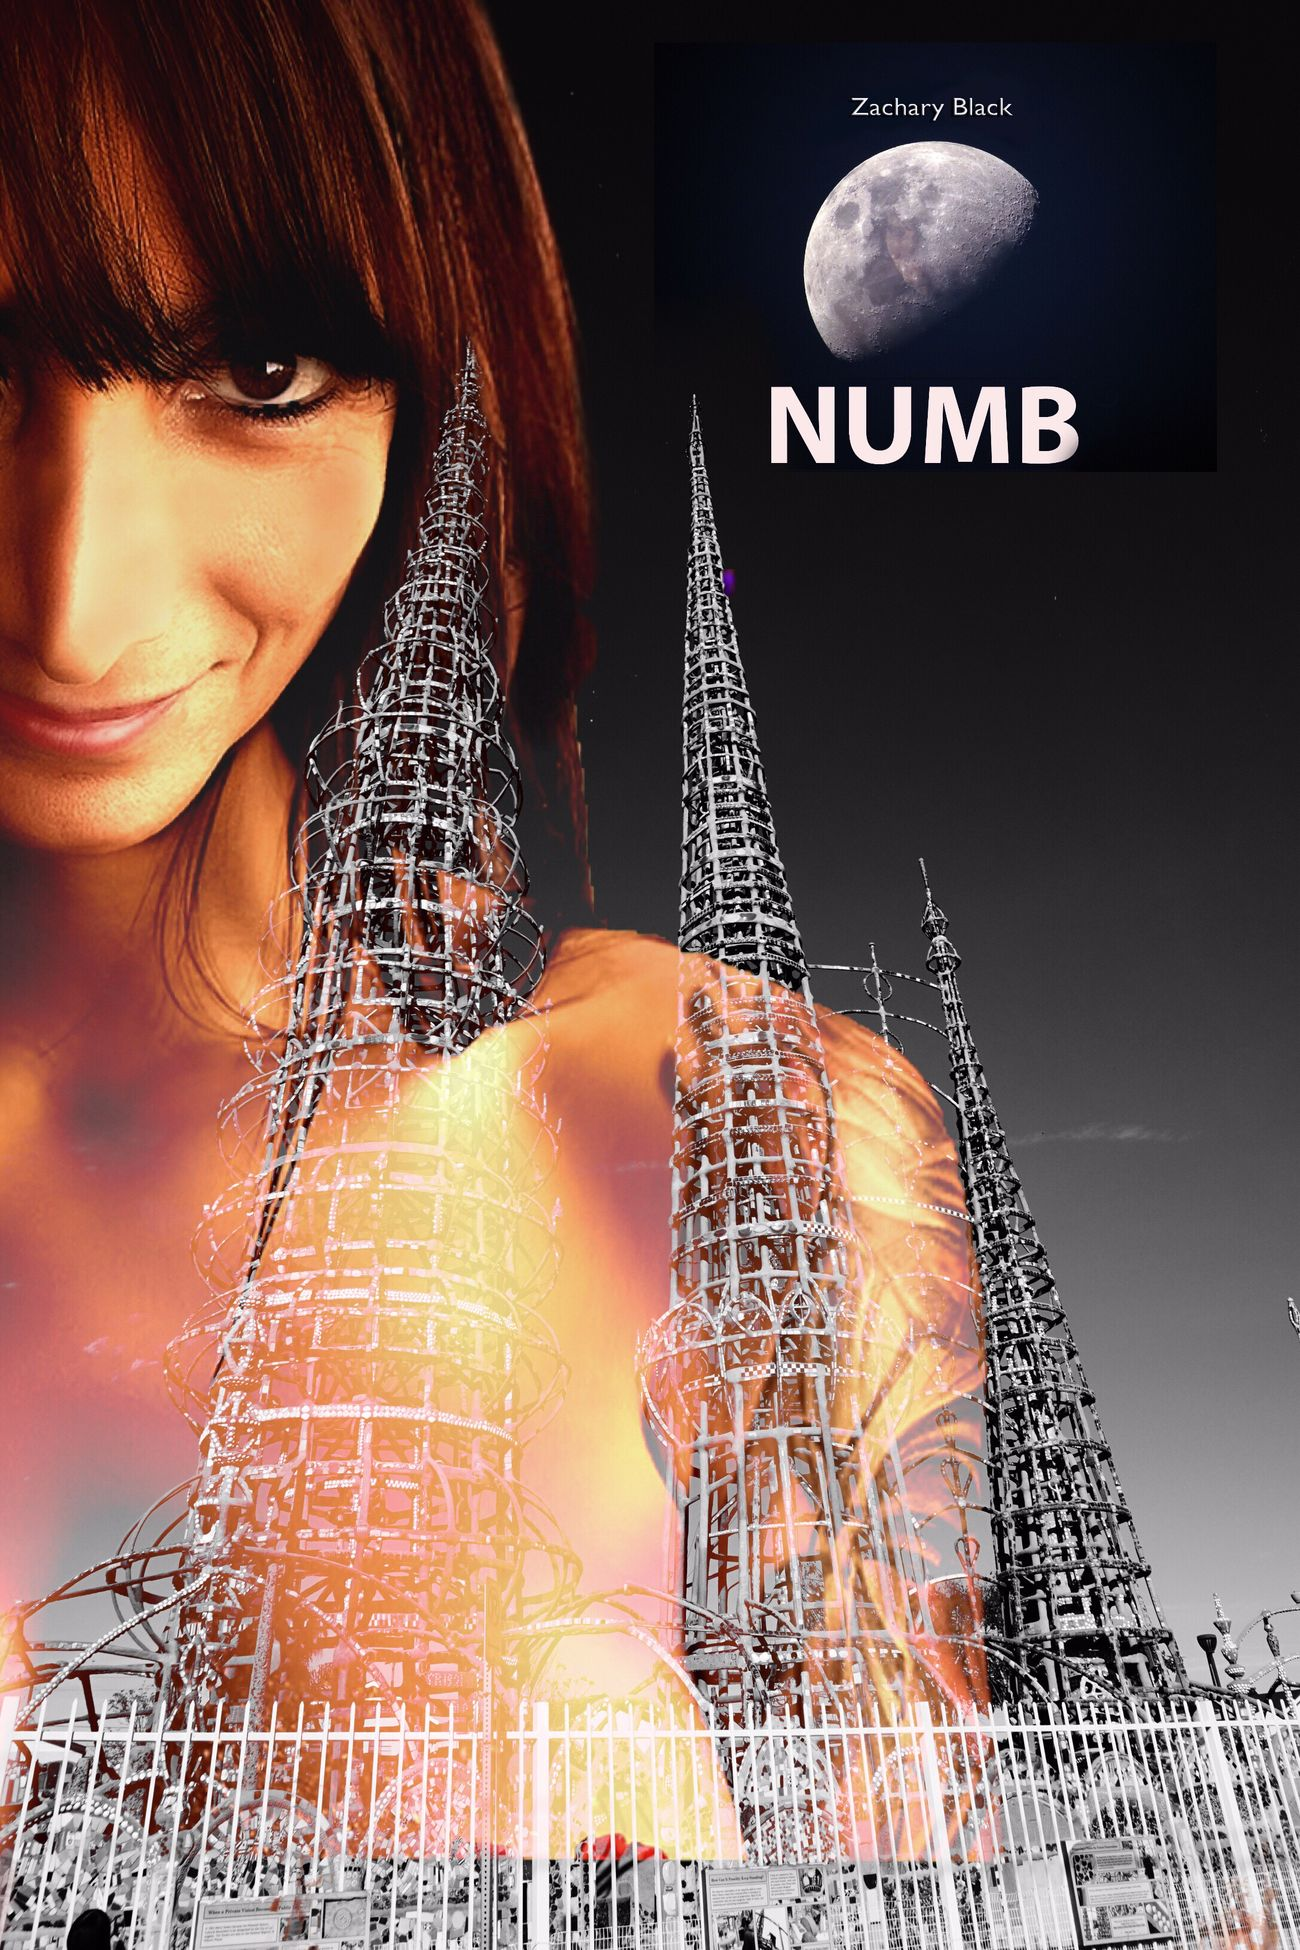 New Zachary Black album 'NUMB' coming Soon. Sexygirl Armenian Girls Rock N Roll Rock Chick Music Poster Indie Alternative Music Watts Towers